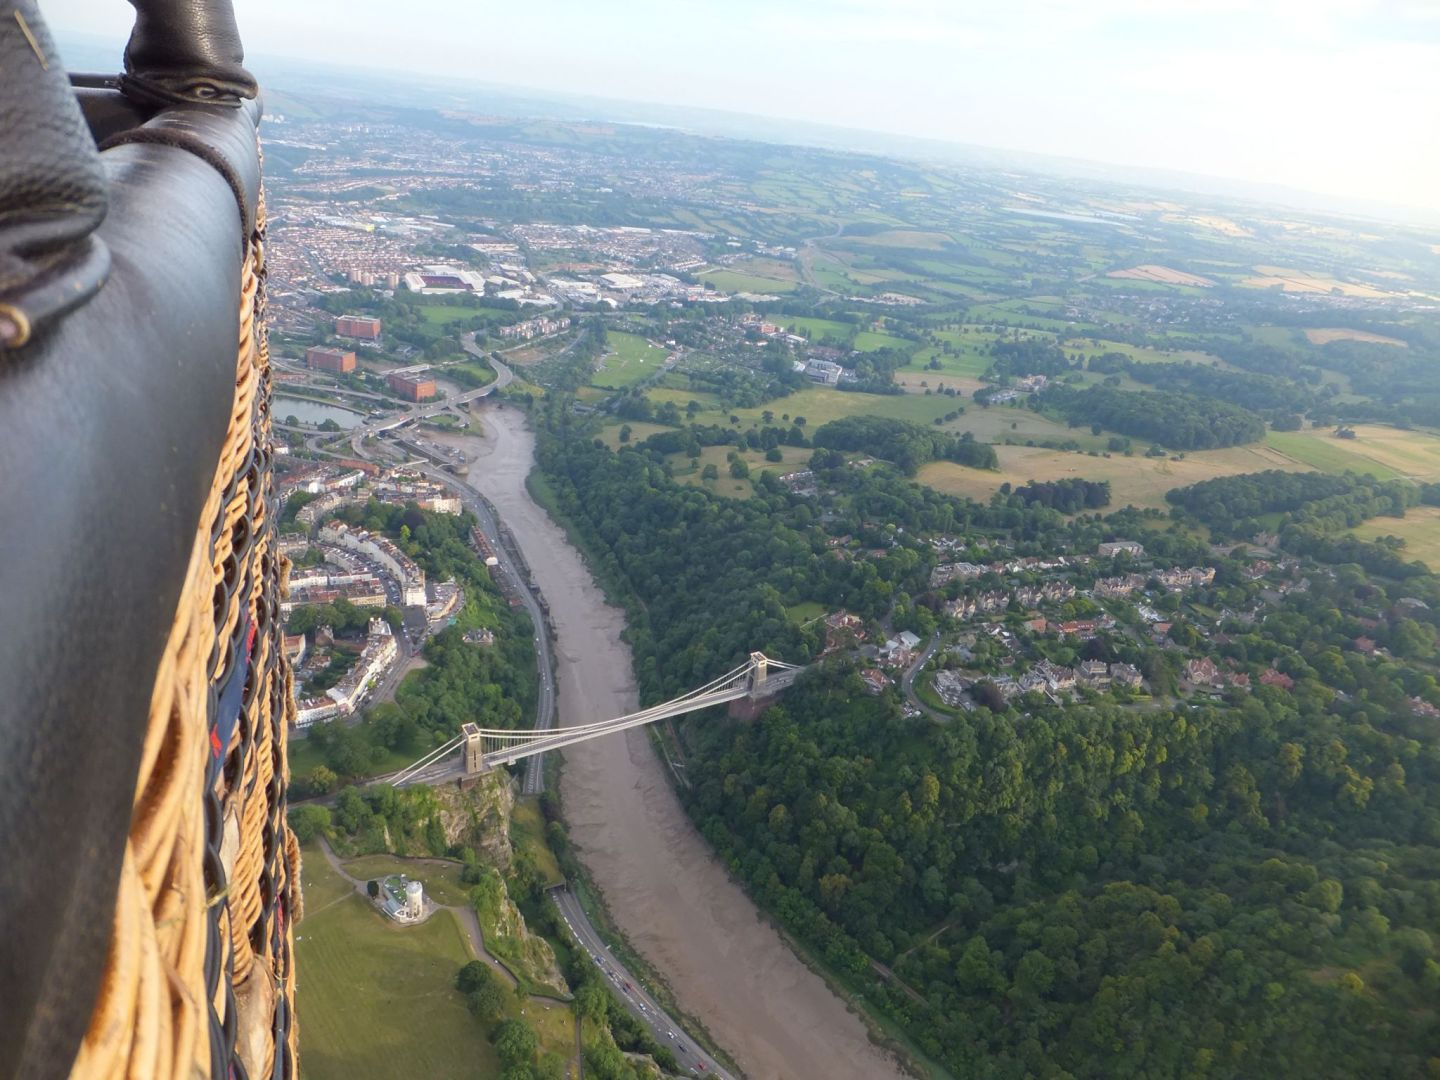 My Hot Air Balloon Experience with Bristol Balloons